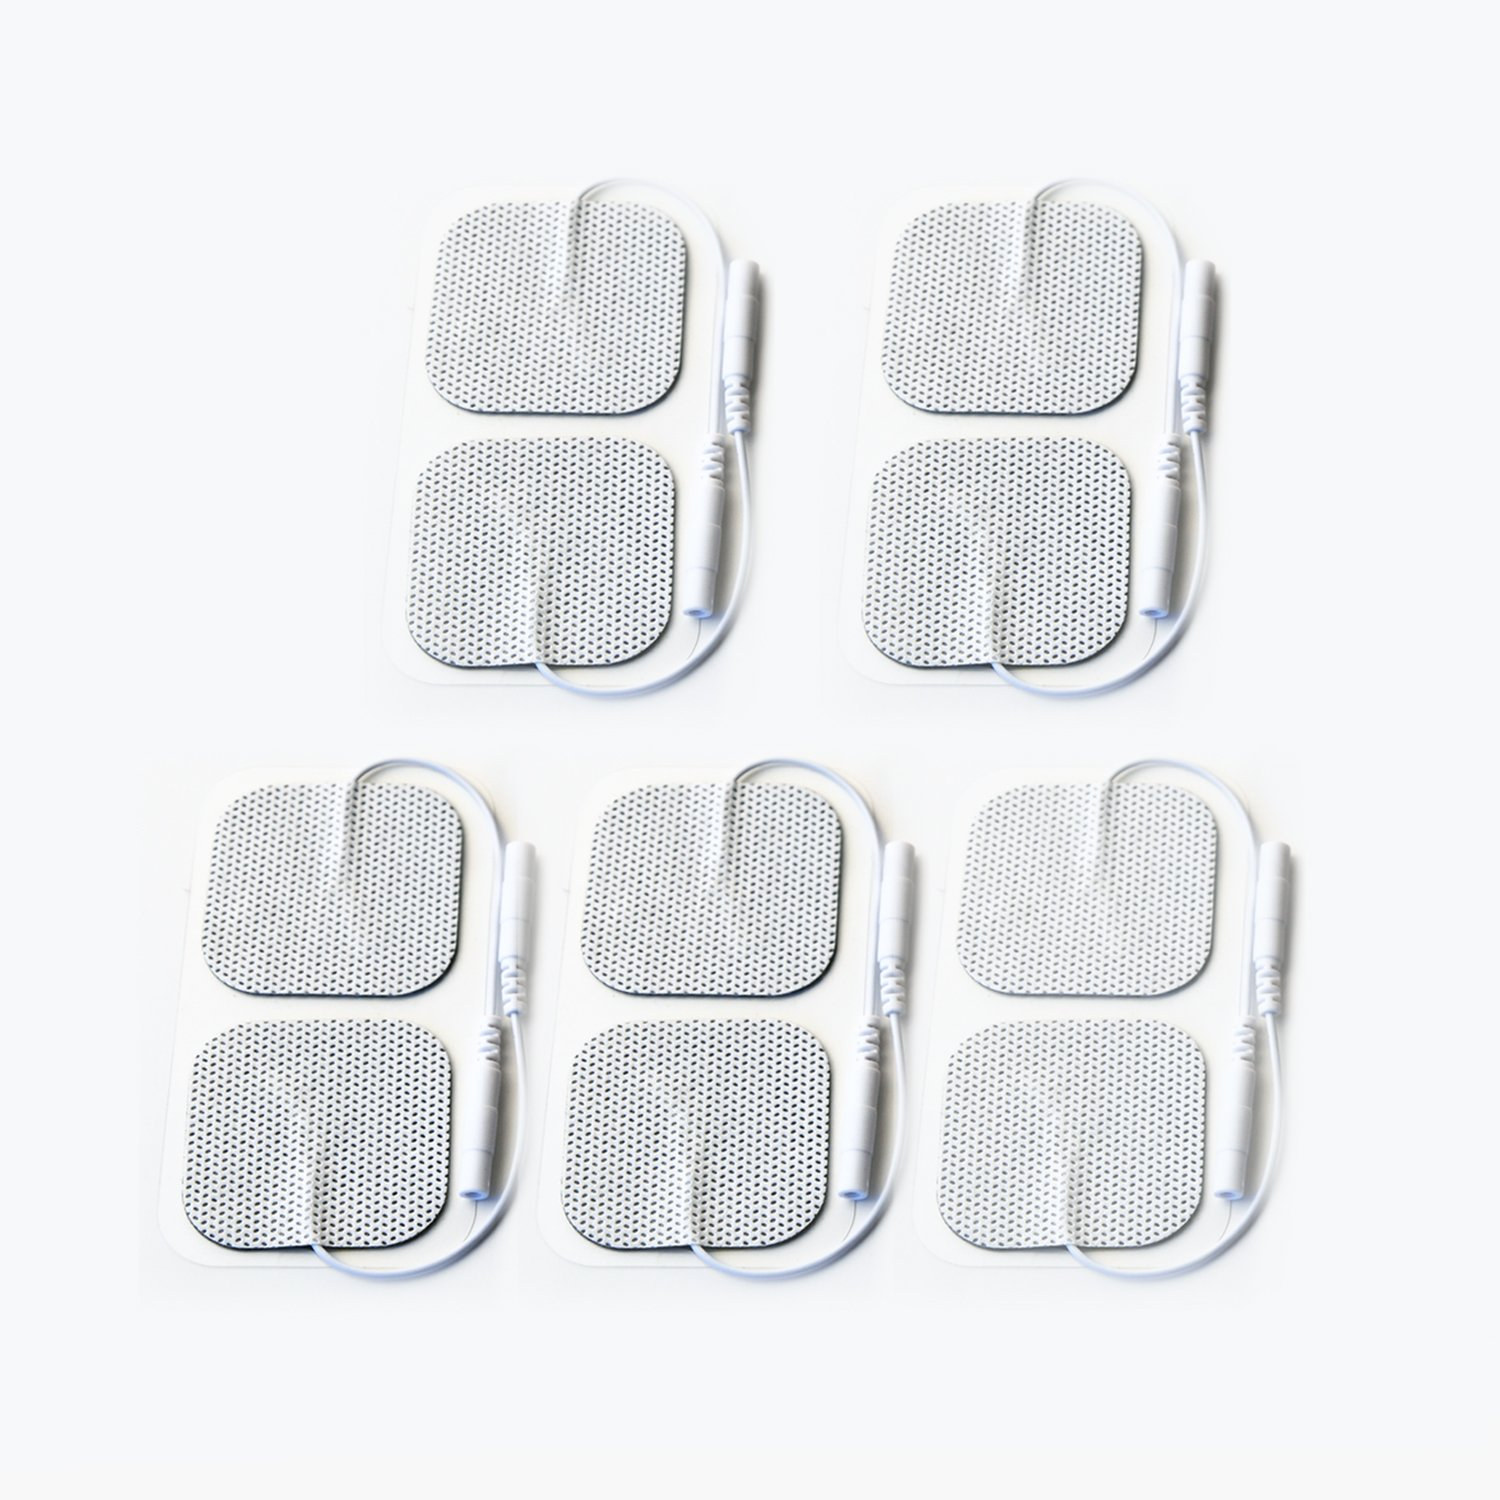 ChoiceMMed Self-adhesive Replacement Gel Pads for Electronic Pulse Stimulators (pack of 10 pads)